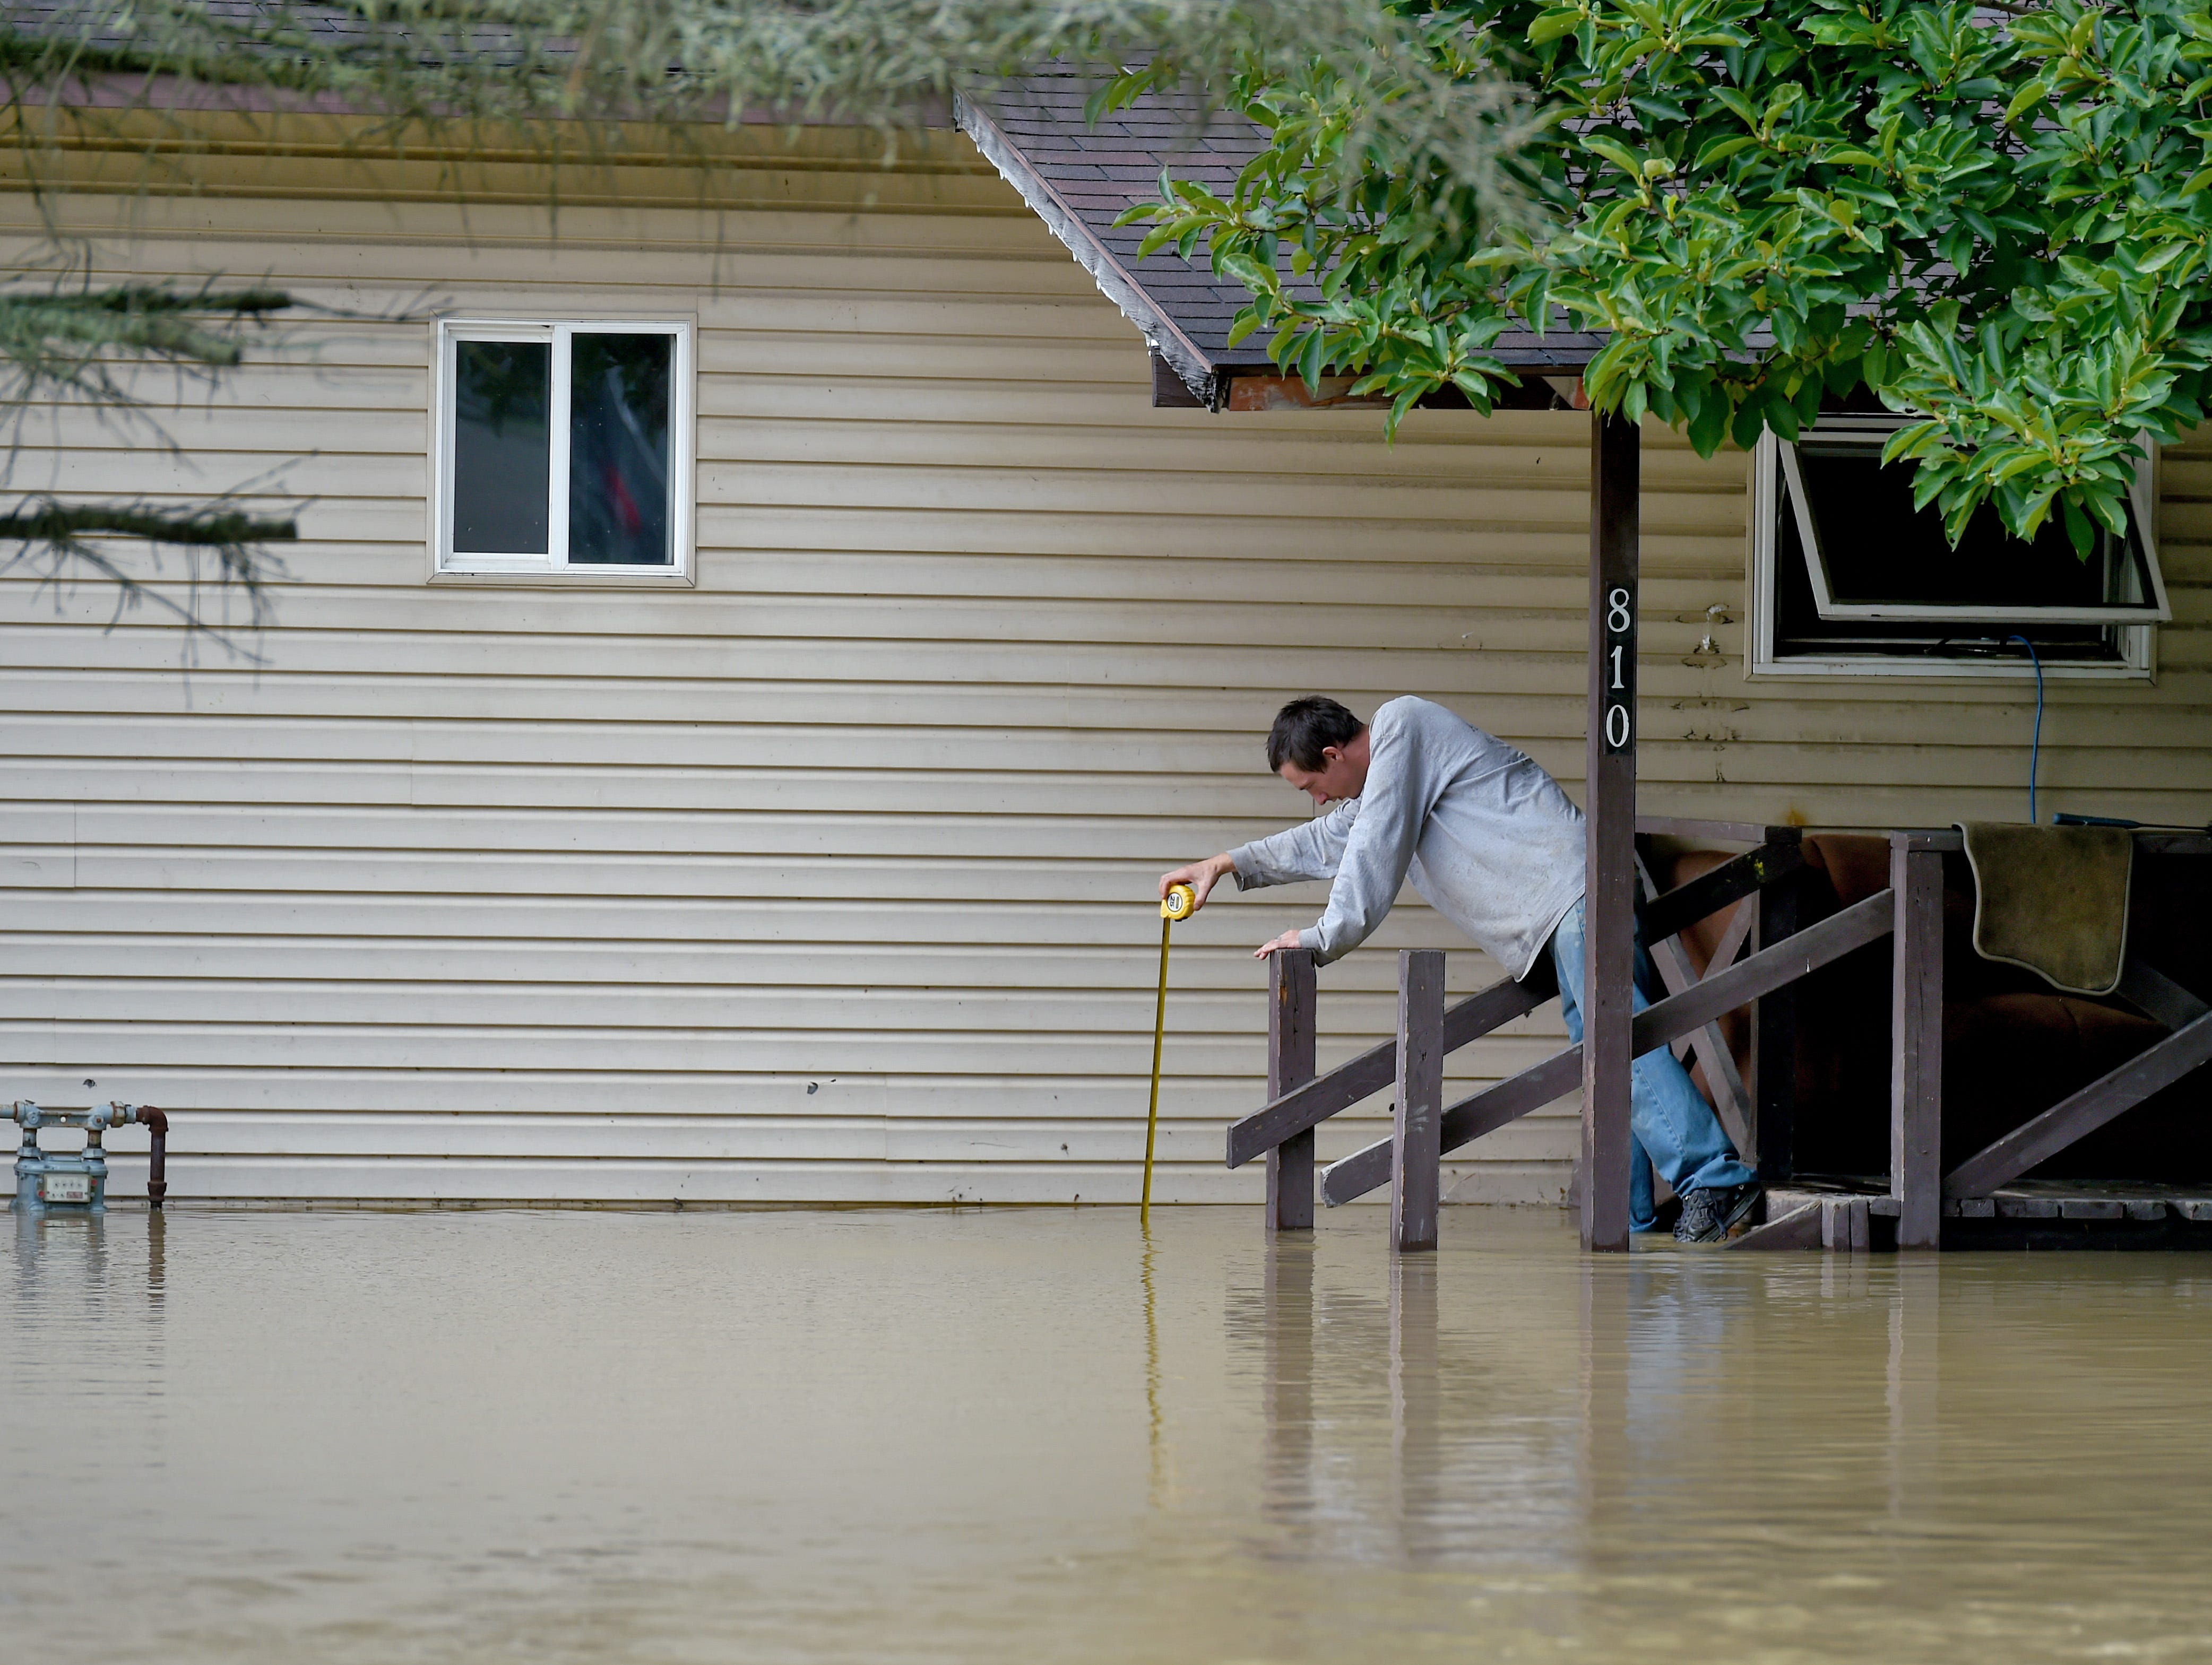 Mark Barber measures the flood waters from the porch of his rental property on Rt. 96 in Candor. Heavy rains caused flash flooding throughout parts of the Southern Tier on Tuesday, September 18, 2018. In Tioga County, a State of Emergency was declared as flash flooding closed roads and damaged property.